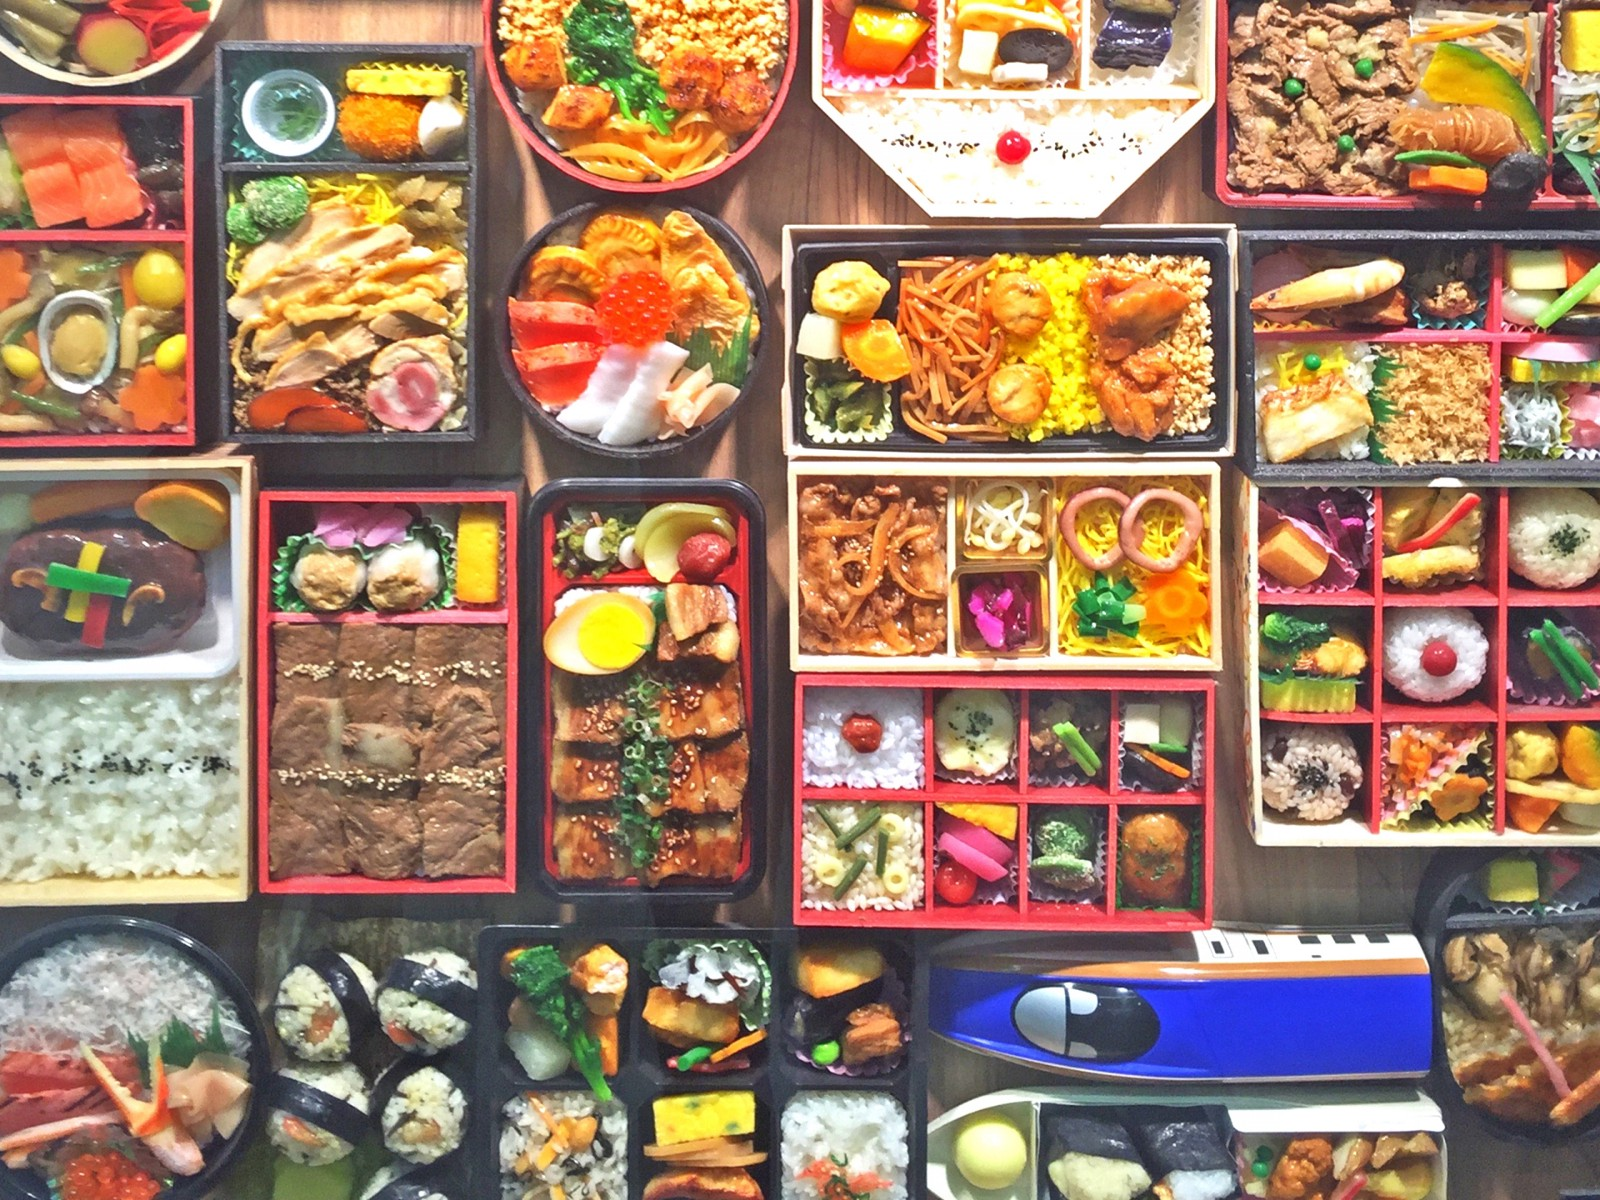 EKIBEN : Train Station Bento Boxes in Japan